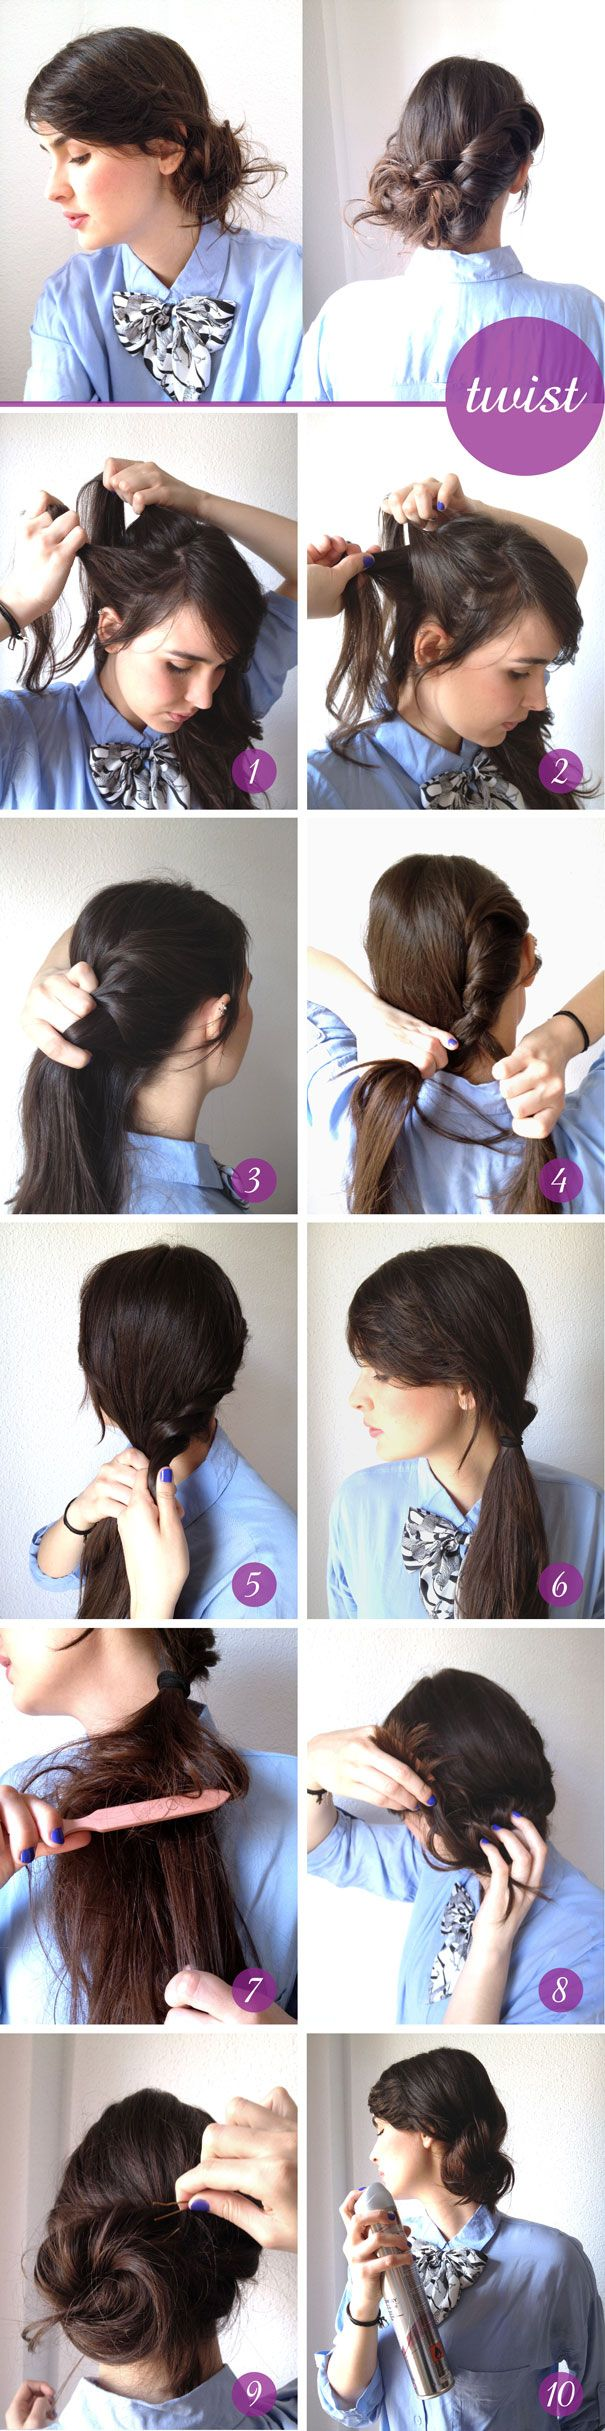 Messy side hair bun tutorial